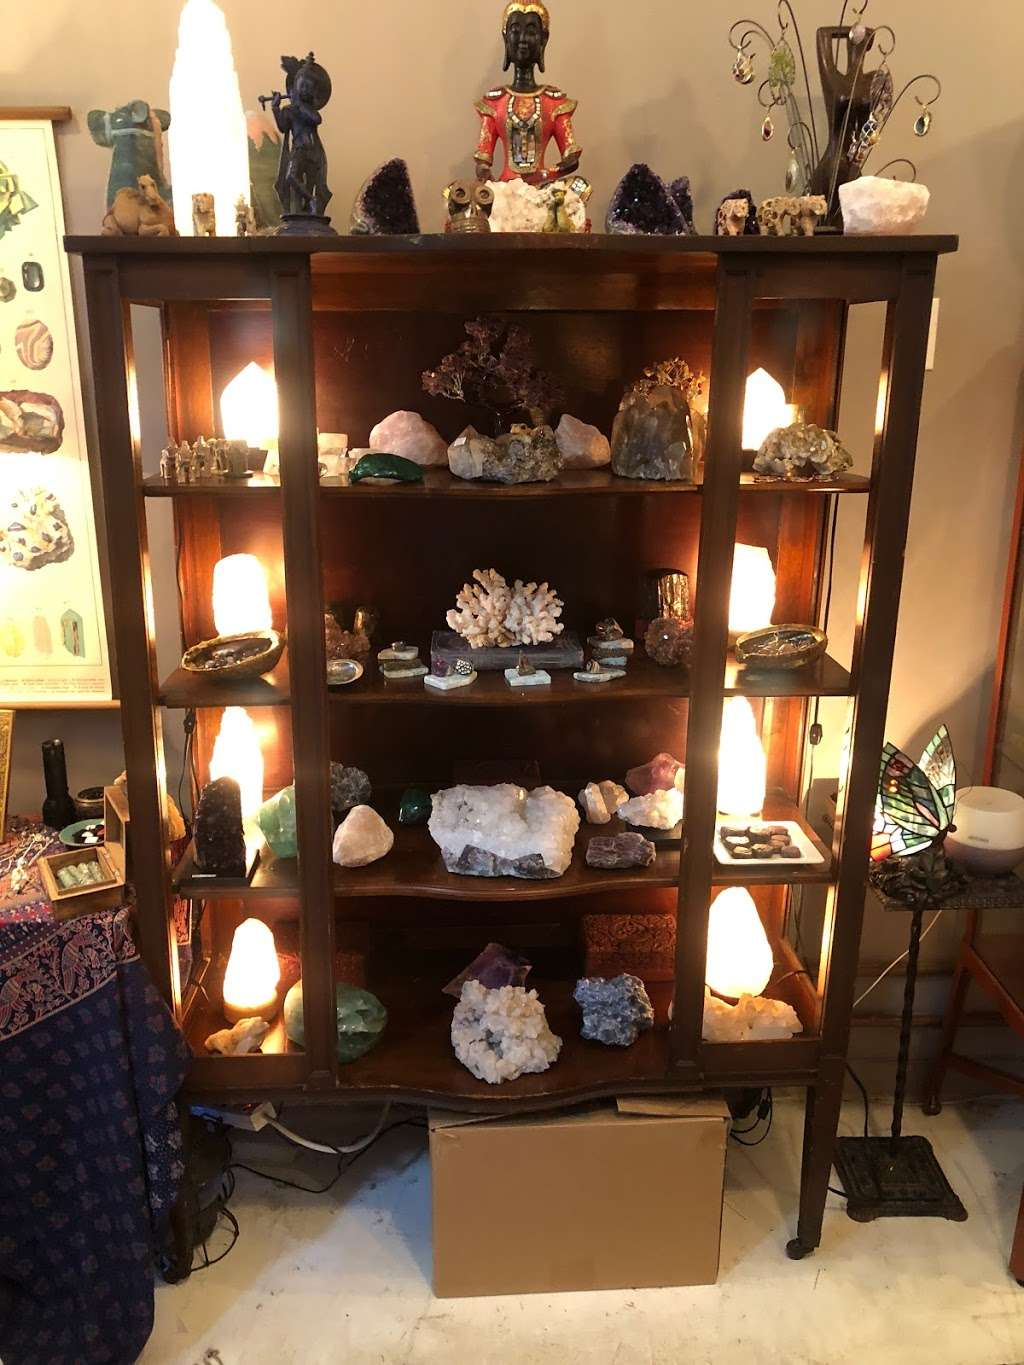 Rubys House of Crystals - store  | Photo 7 of 10 | Address: 119 Columbia St, Brooklyn, NY 11231, USA | Phone: (347) 350-0050